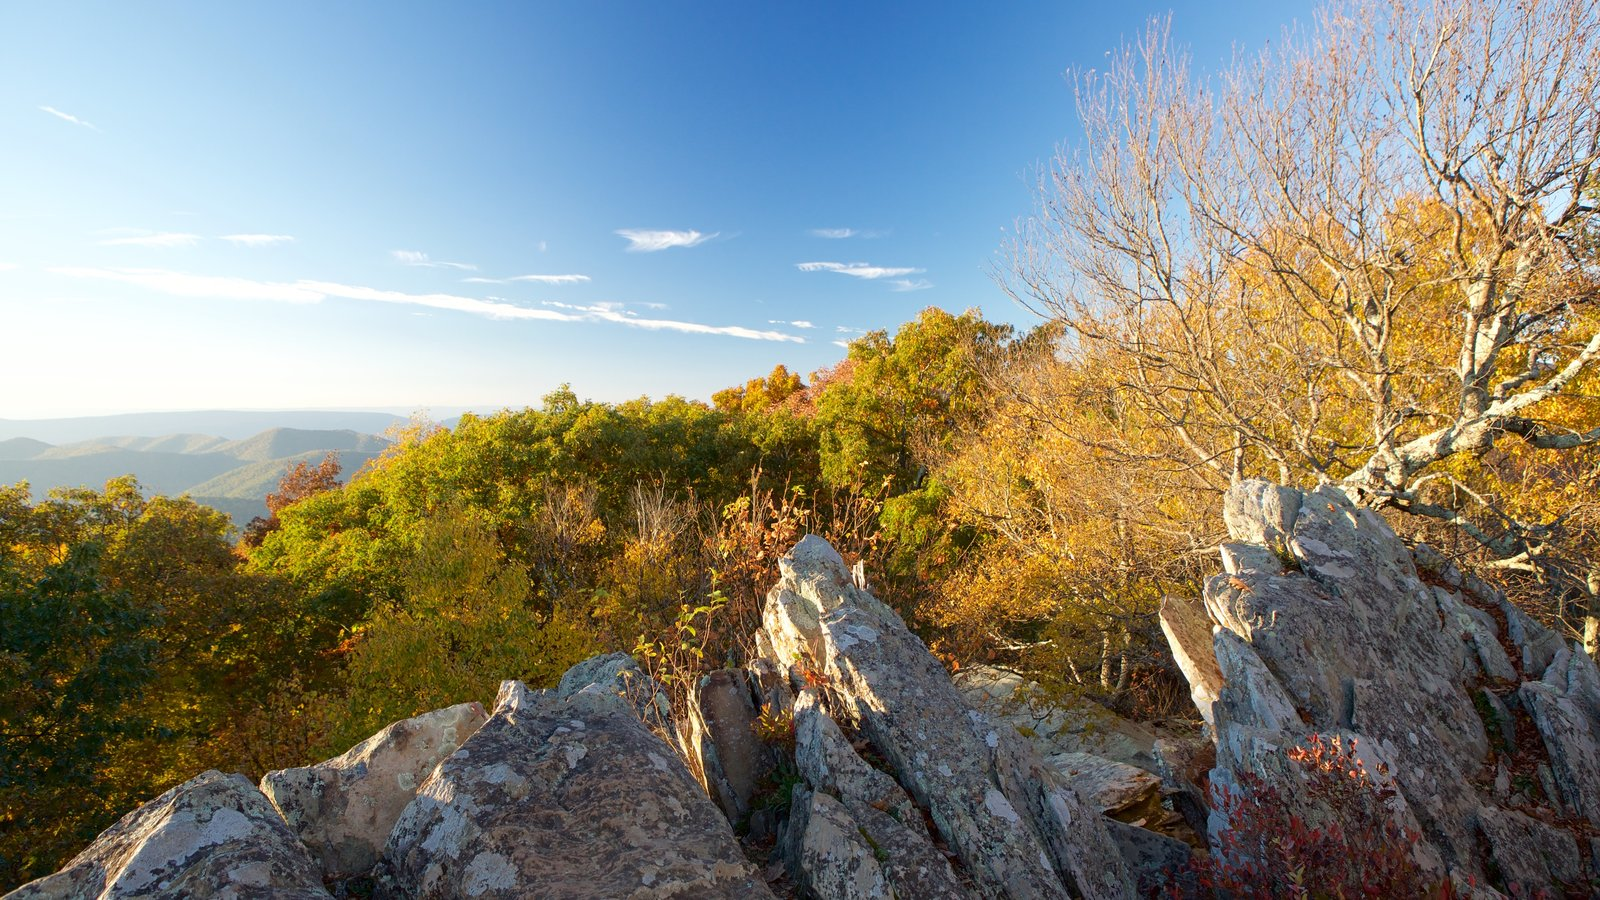 Shenandoah National Park showing tranquil scenes and landscape views